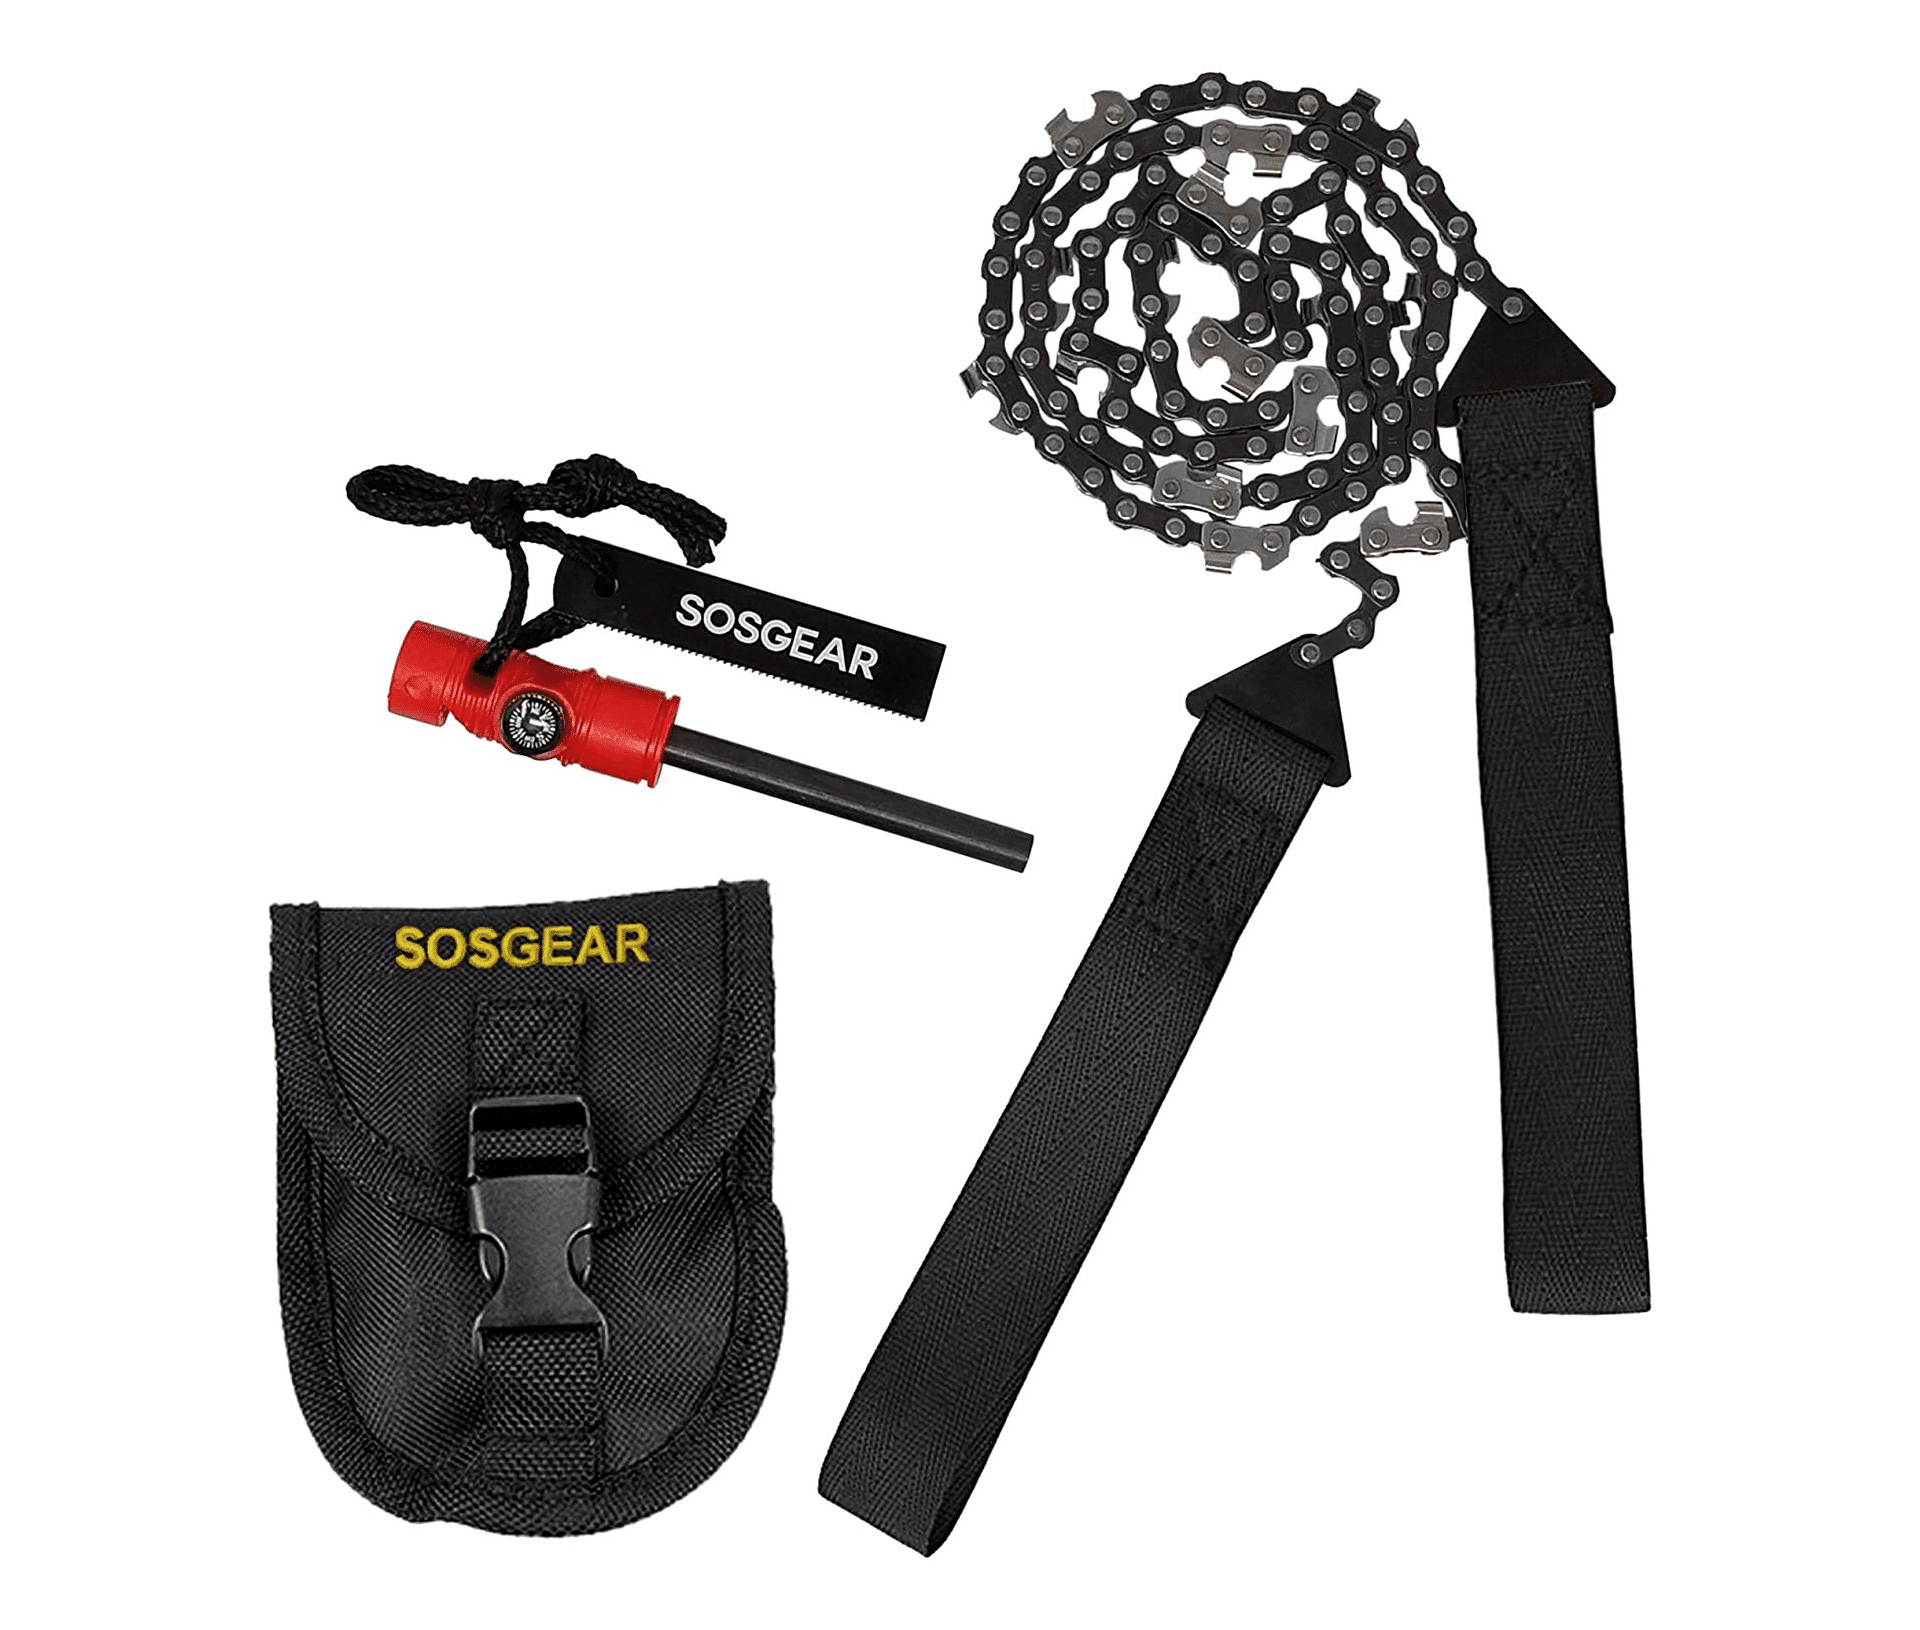 SOS Gear Pocket Chainsaw and Fire Starter